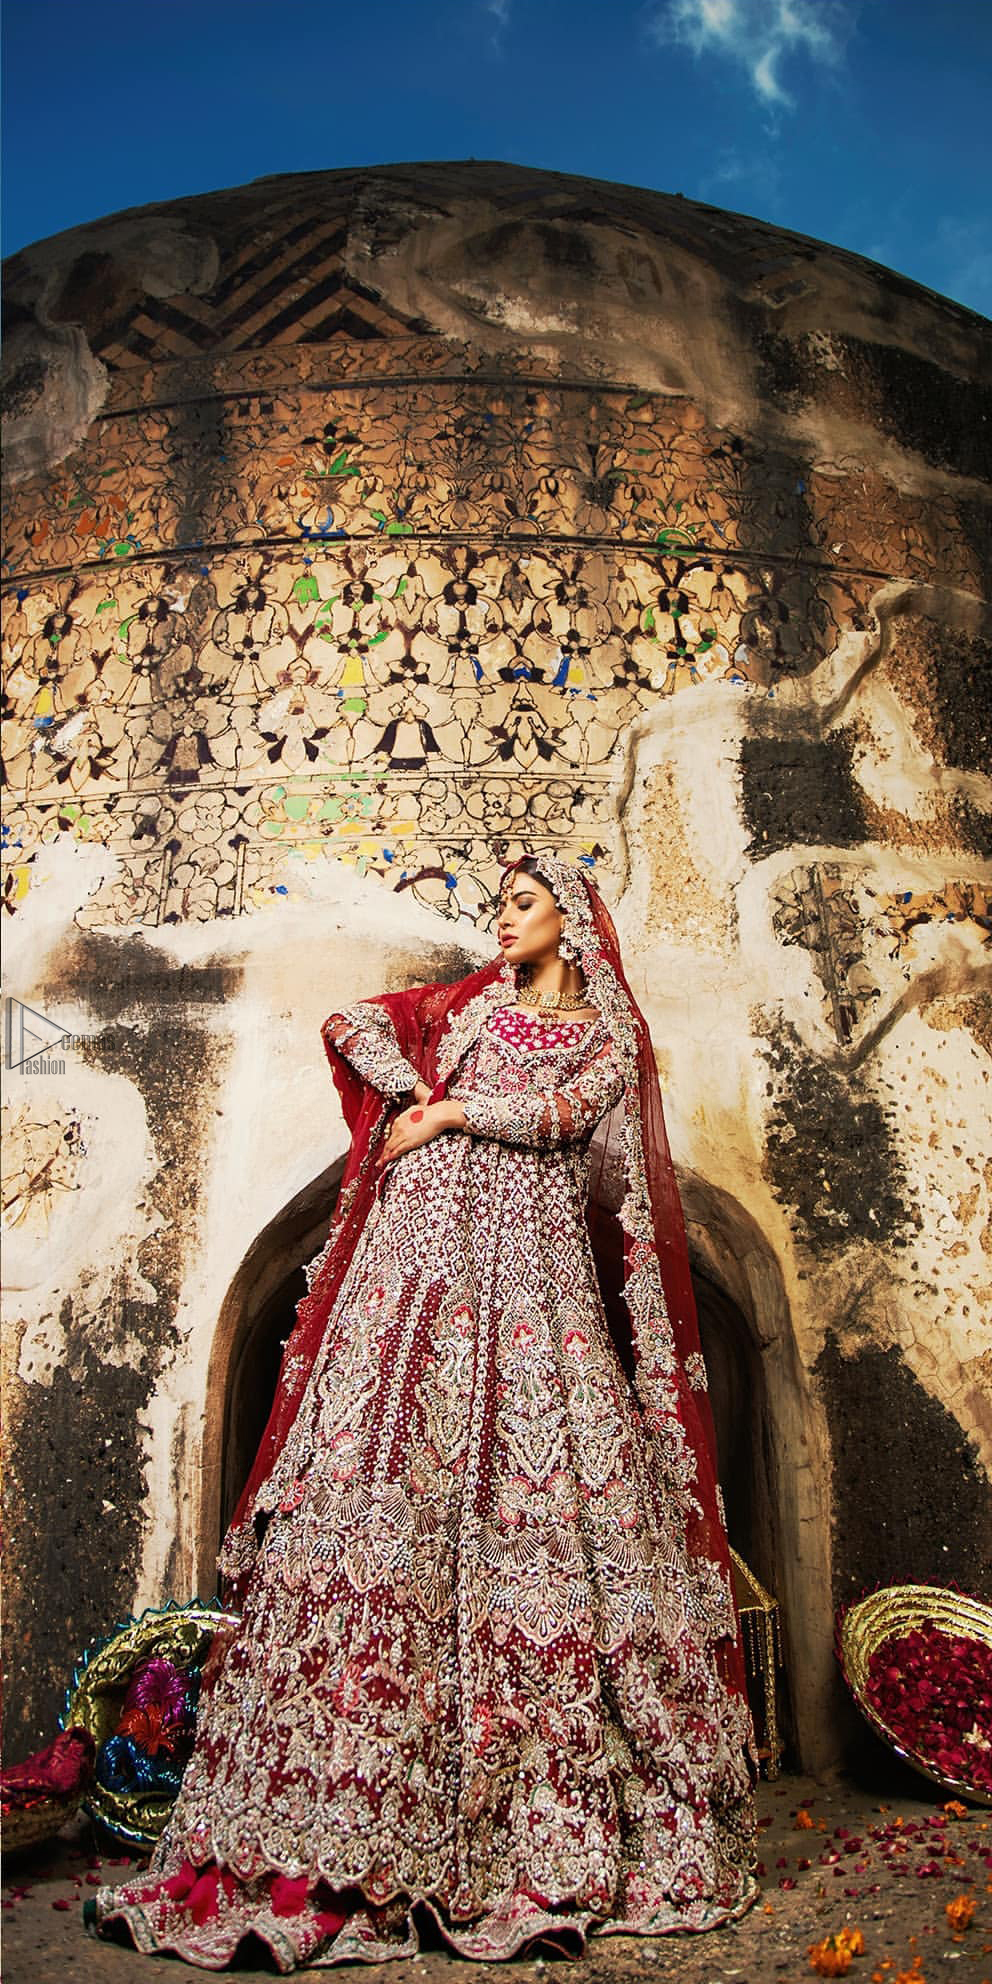 Complete your big day with the perfect dress in our selection of stunning wedding dresses. This artisanal piece is rendered in grace and timelessness. The bodice with a sweetheart neckline is adorned in richly zardozi work with fabulous sparkle. The rest of the dress is beautifully crafted with floral motifs, geometric patterns and embroidered lines along the length. Pair it up with a red lehenga emphasized with multiple colour kora, dabka, tilla and sequins work. Furthermore, the outfit is also adorned with sequins spray all over the ground. Complete the look with an artfully coordinated dupatta having embellished scalloped borders and scattered tiny floral motifs.